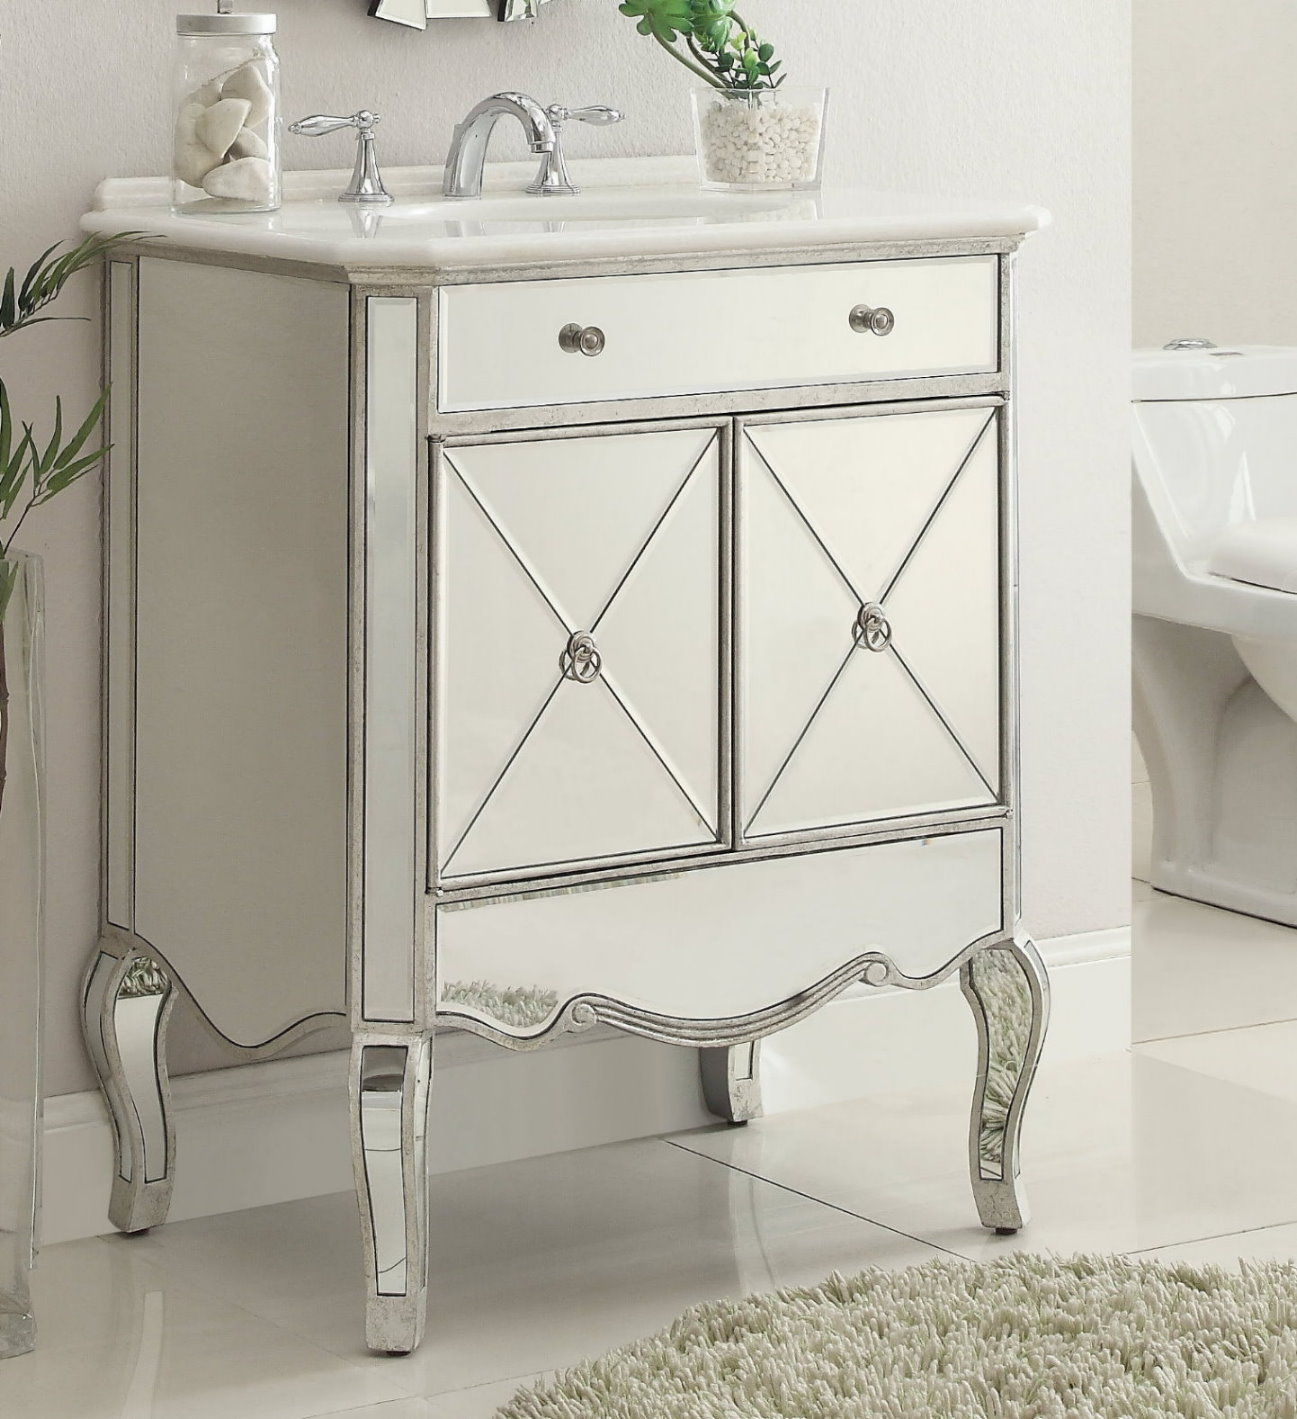 bathroom vanity 30 inch. Adelina 30 Inch Mirrored Silver Bath Vanity Marble Top Bathroom